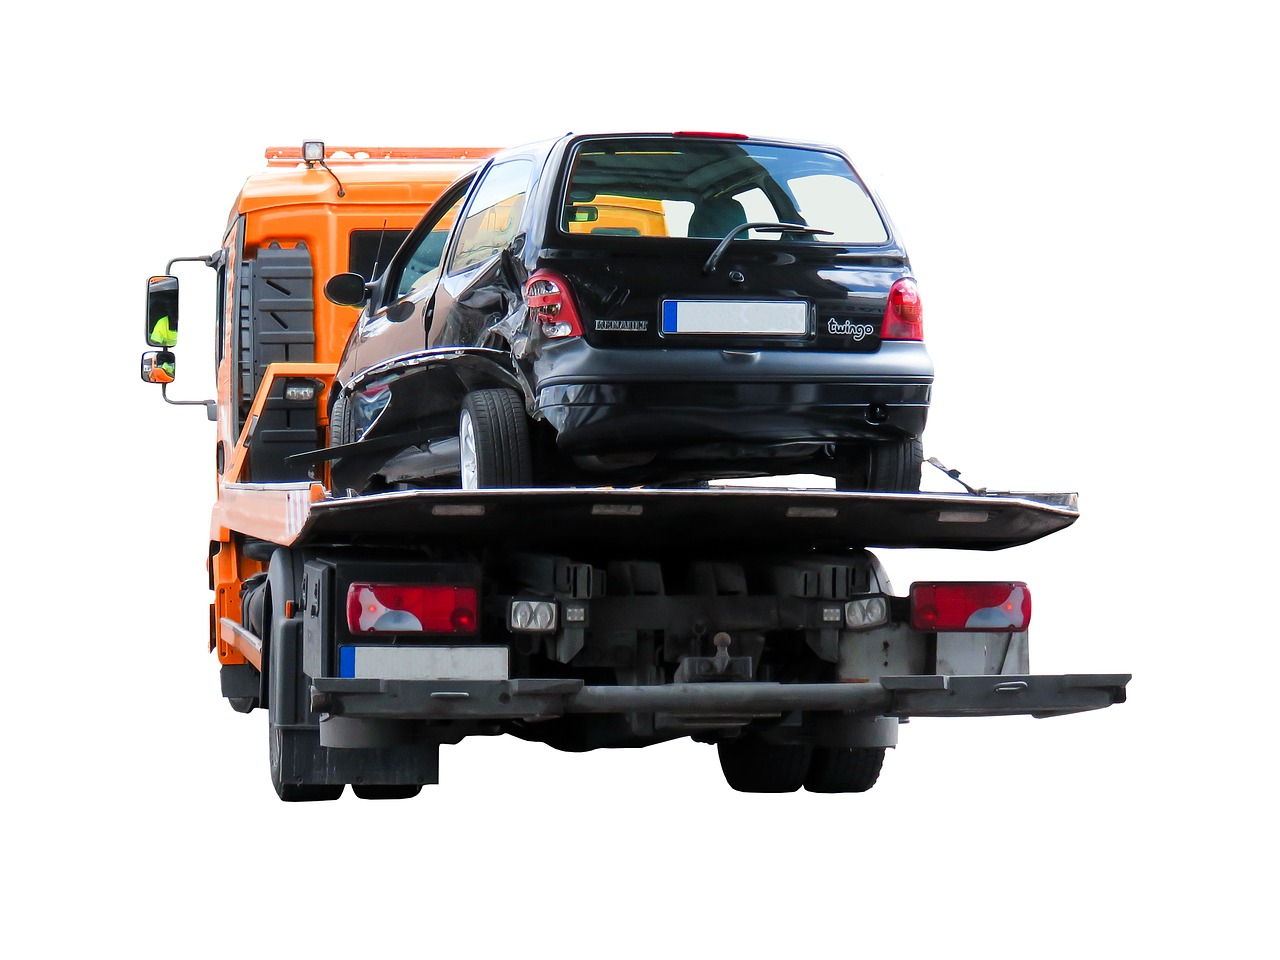 Flatbed Tow Truck Carrying a Damaged Car